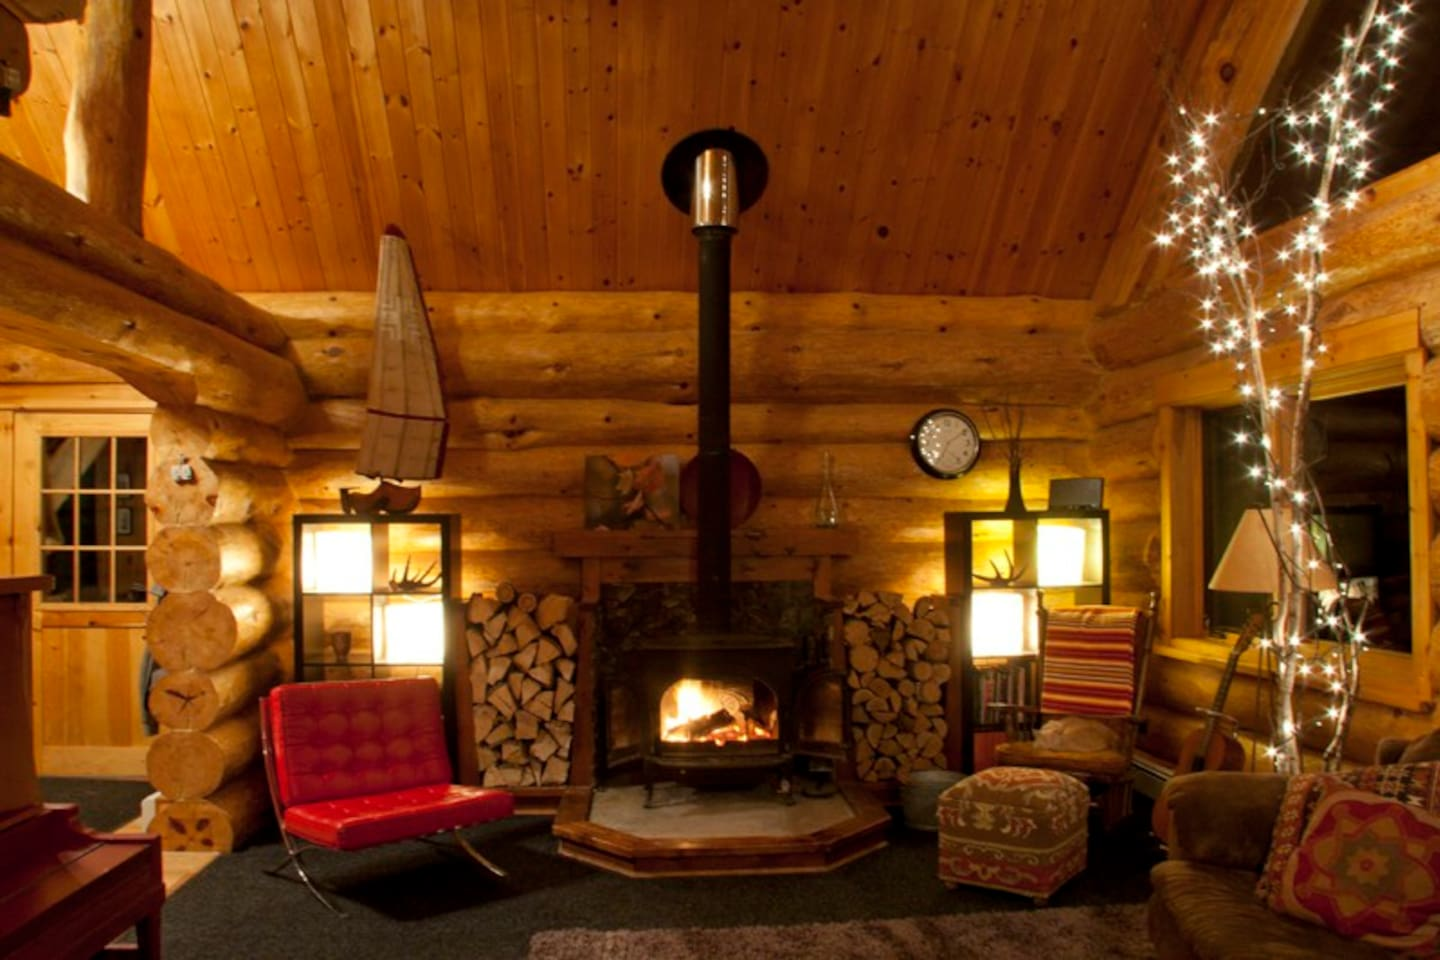 Relax by the wood-burning stove year-round with plenty of firewood